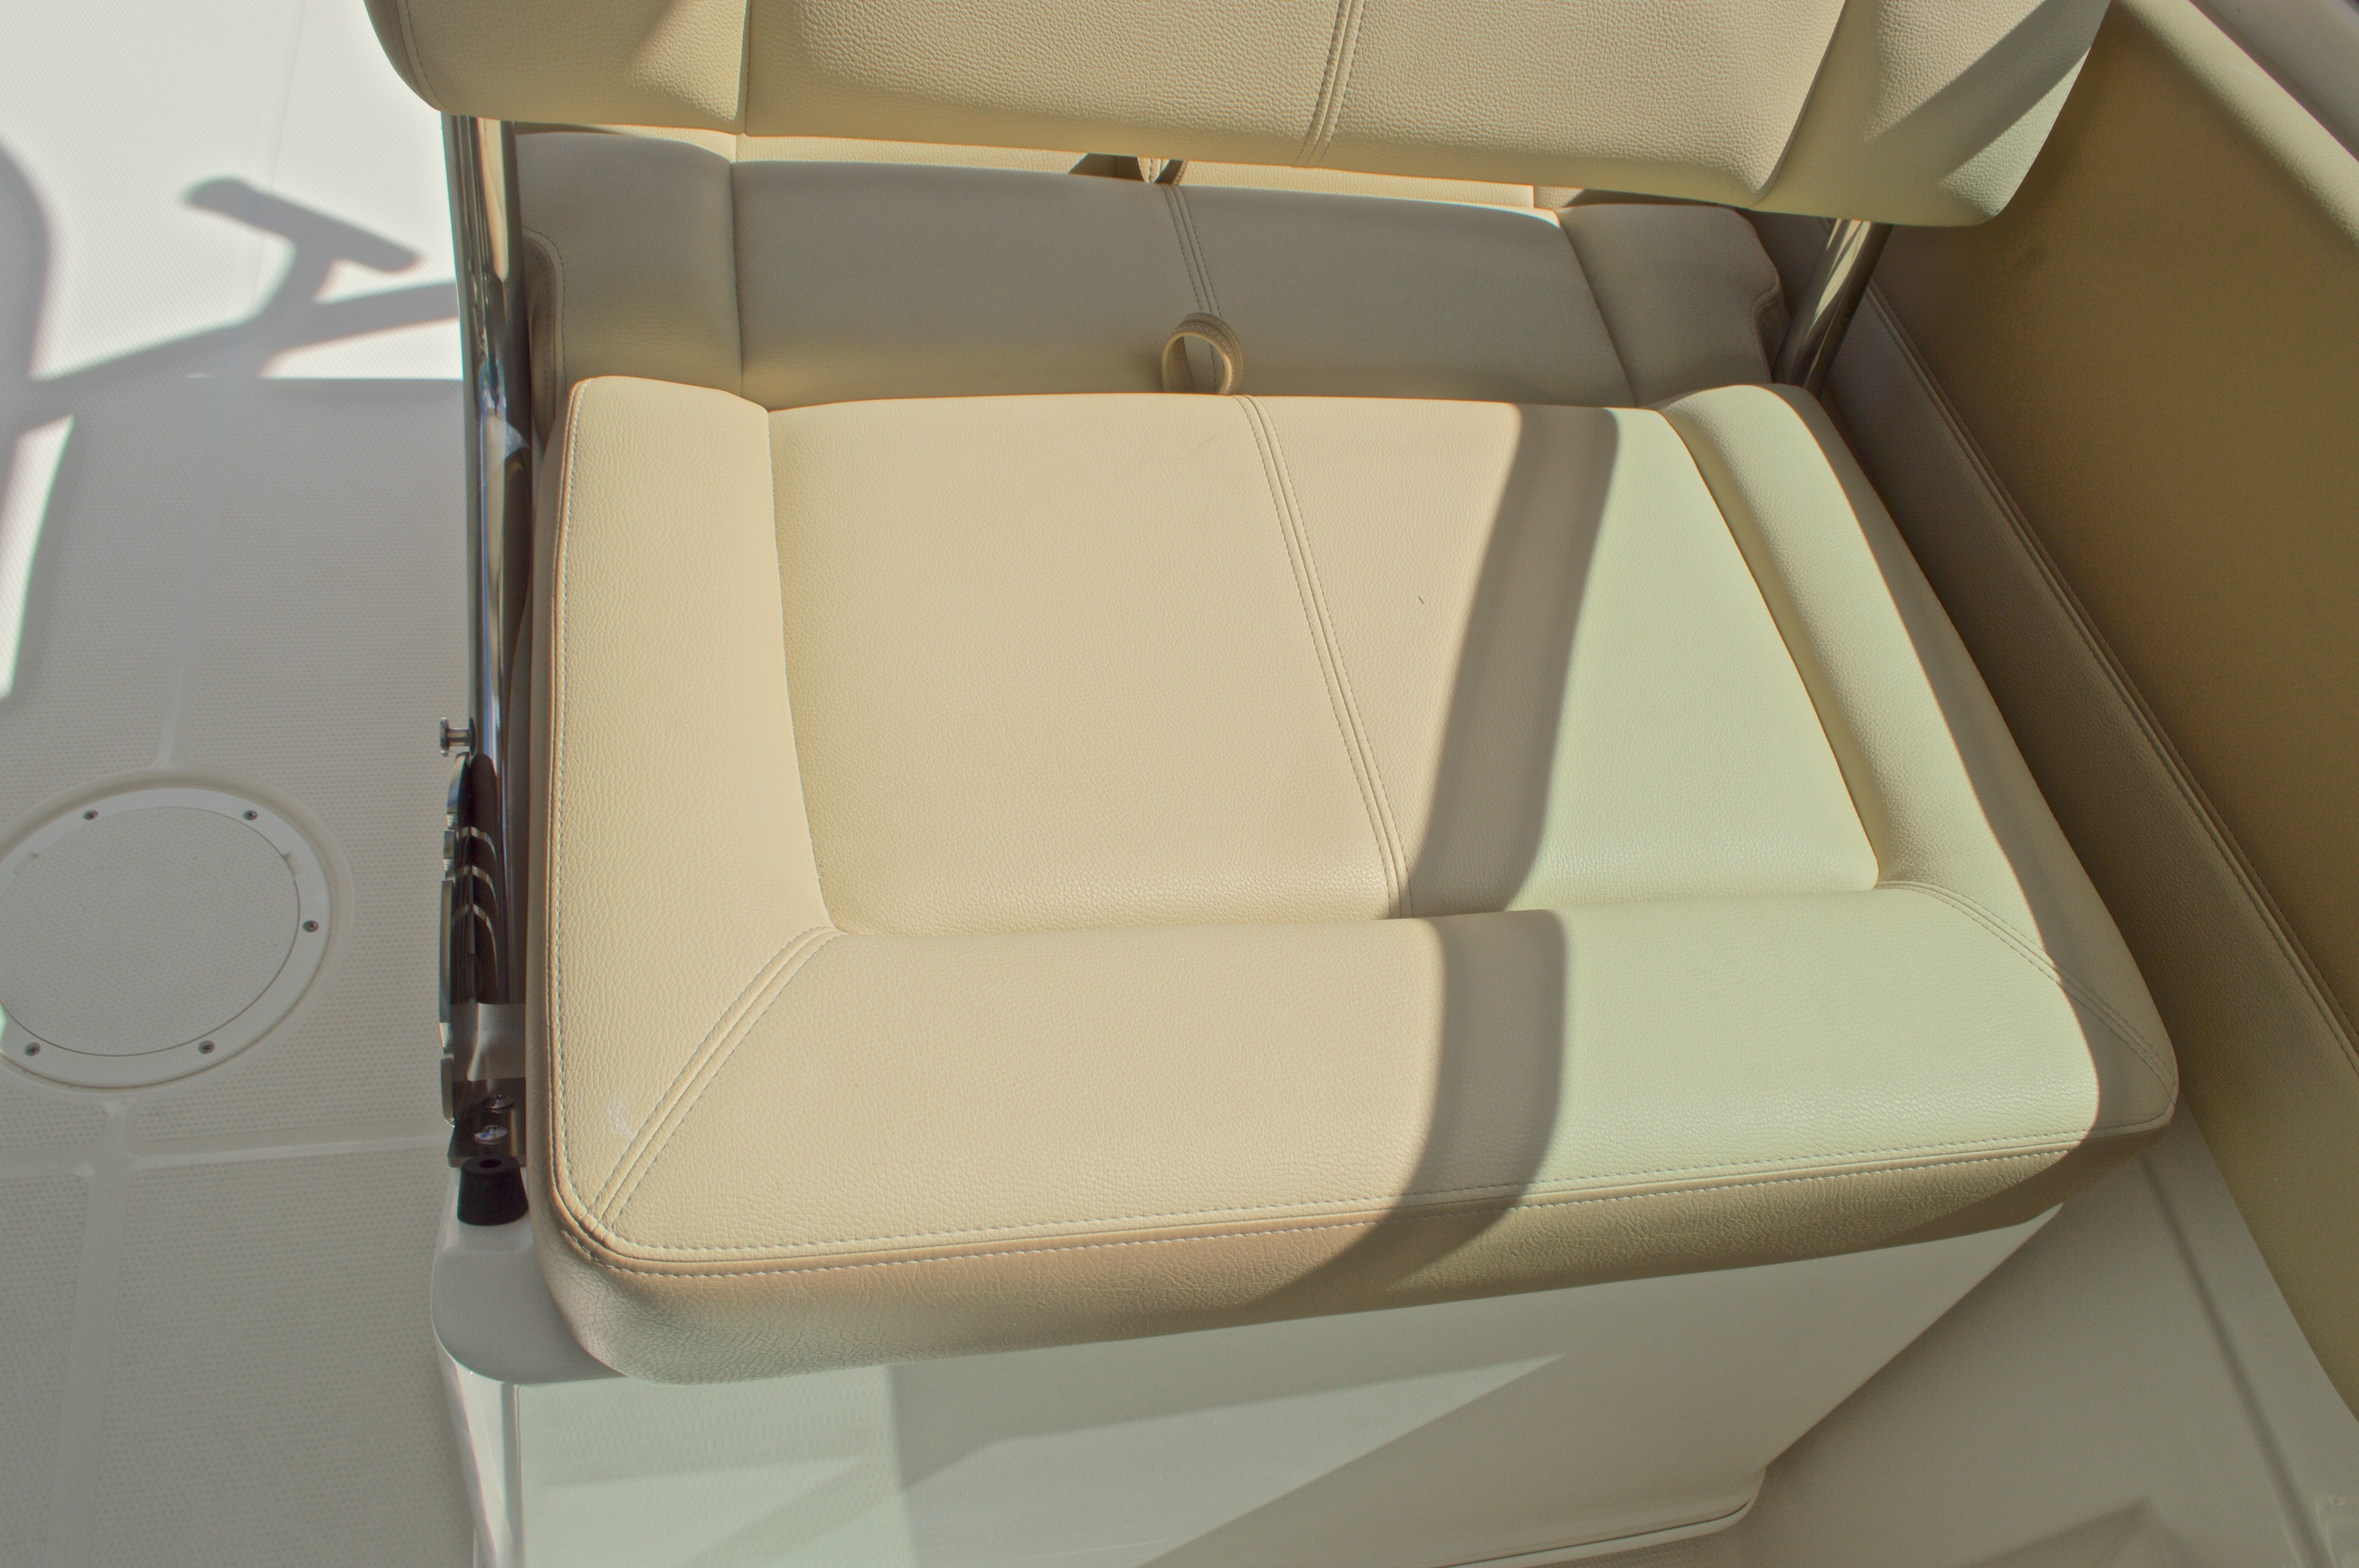 Thumbnail 42 for New 2017 Sailfish 275 Dual Console boat for sale in West Palm Beach, FL